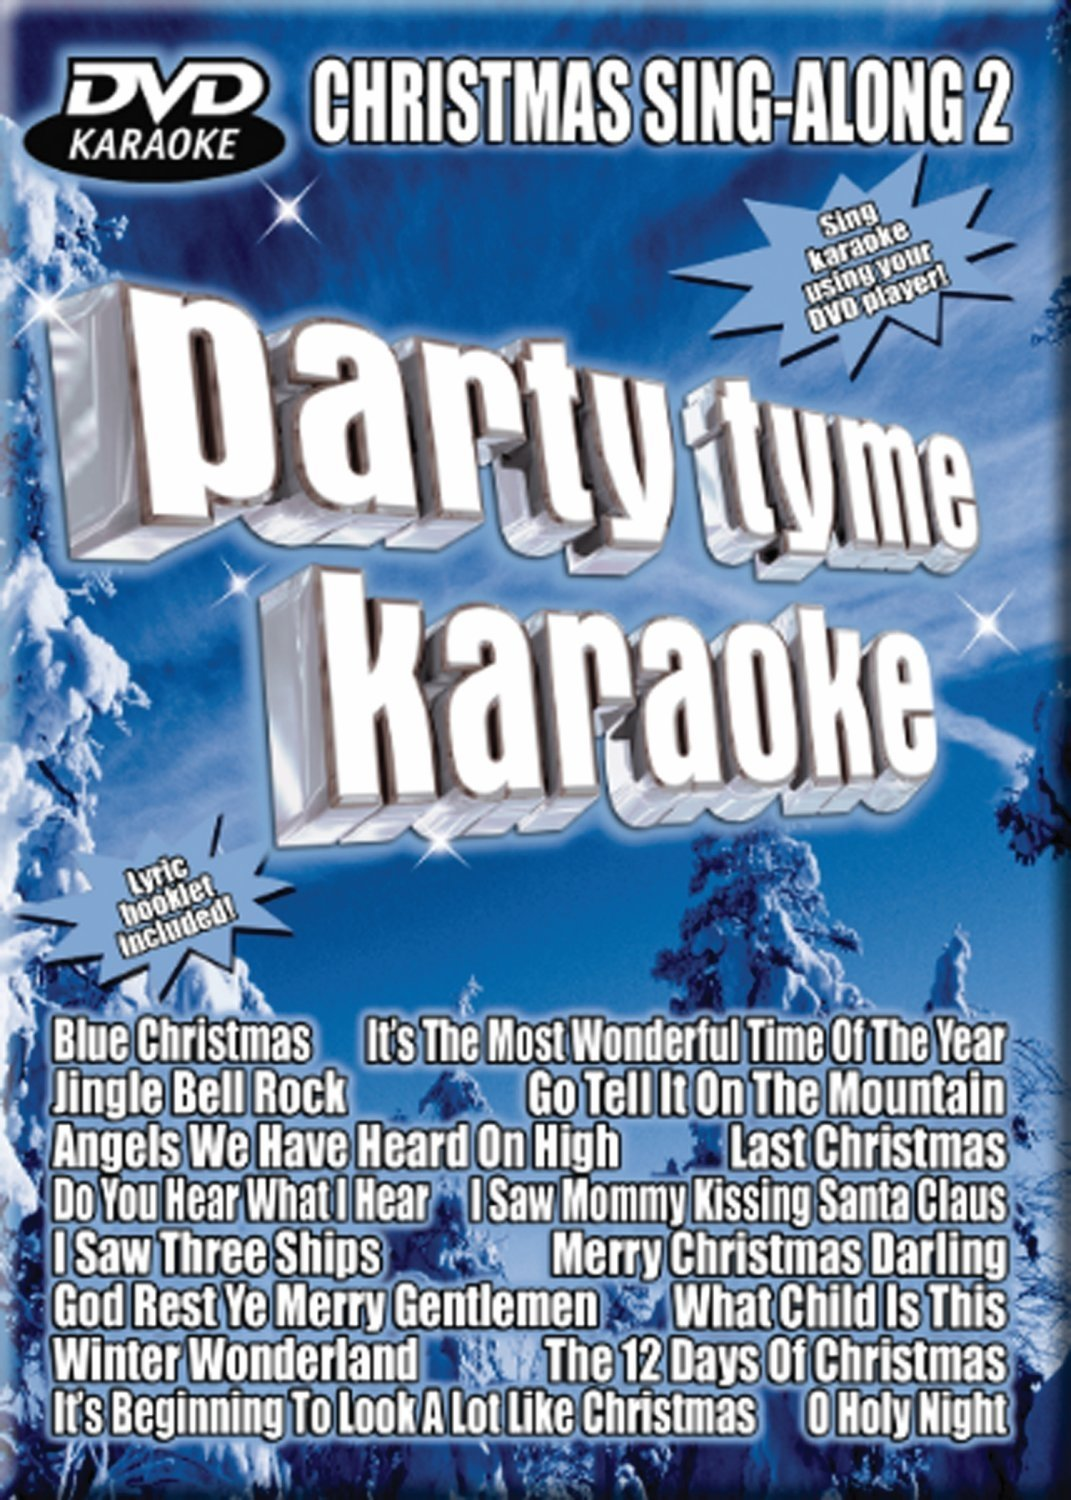 Party Tyme Karaoke DVD Christmas Sing-Along, Vol. 2